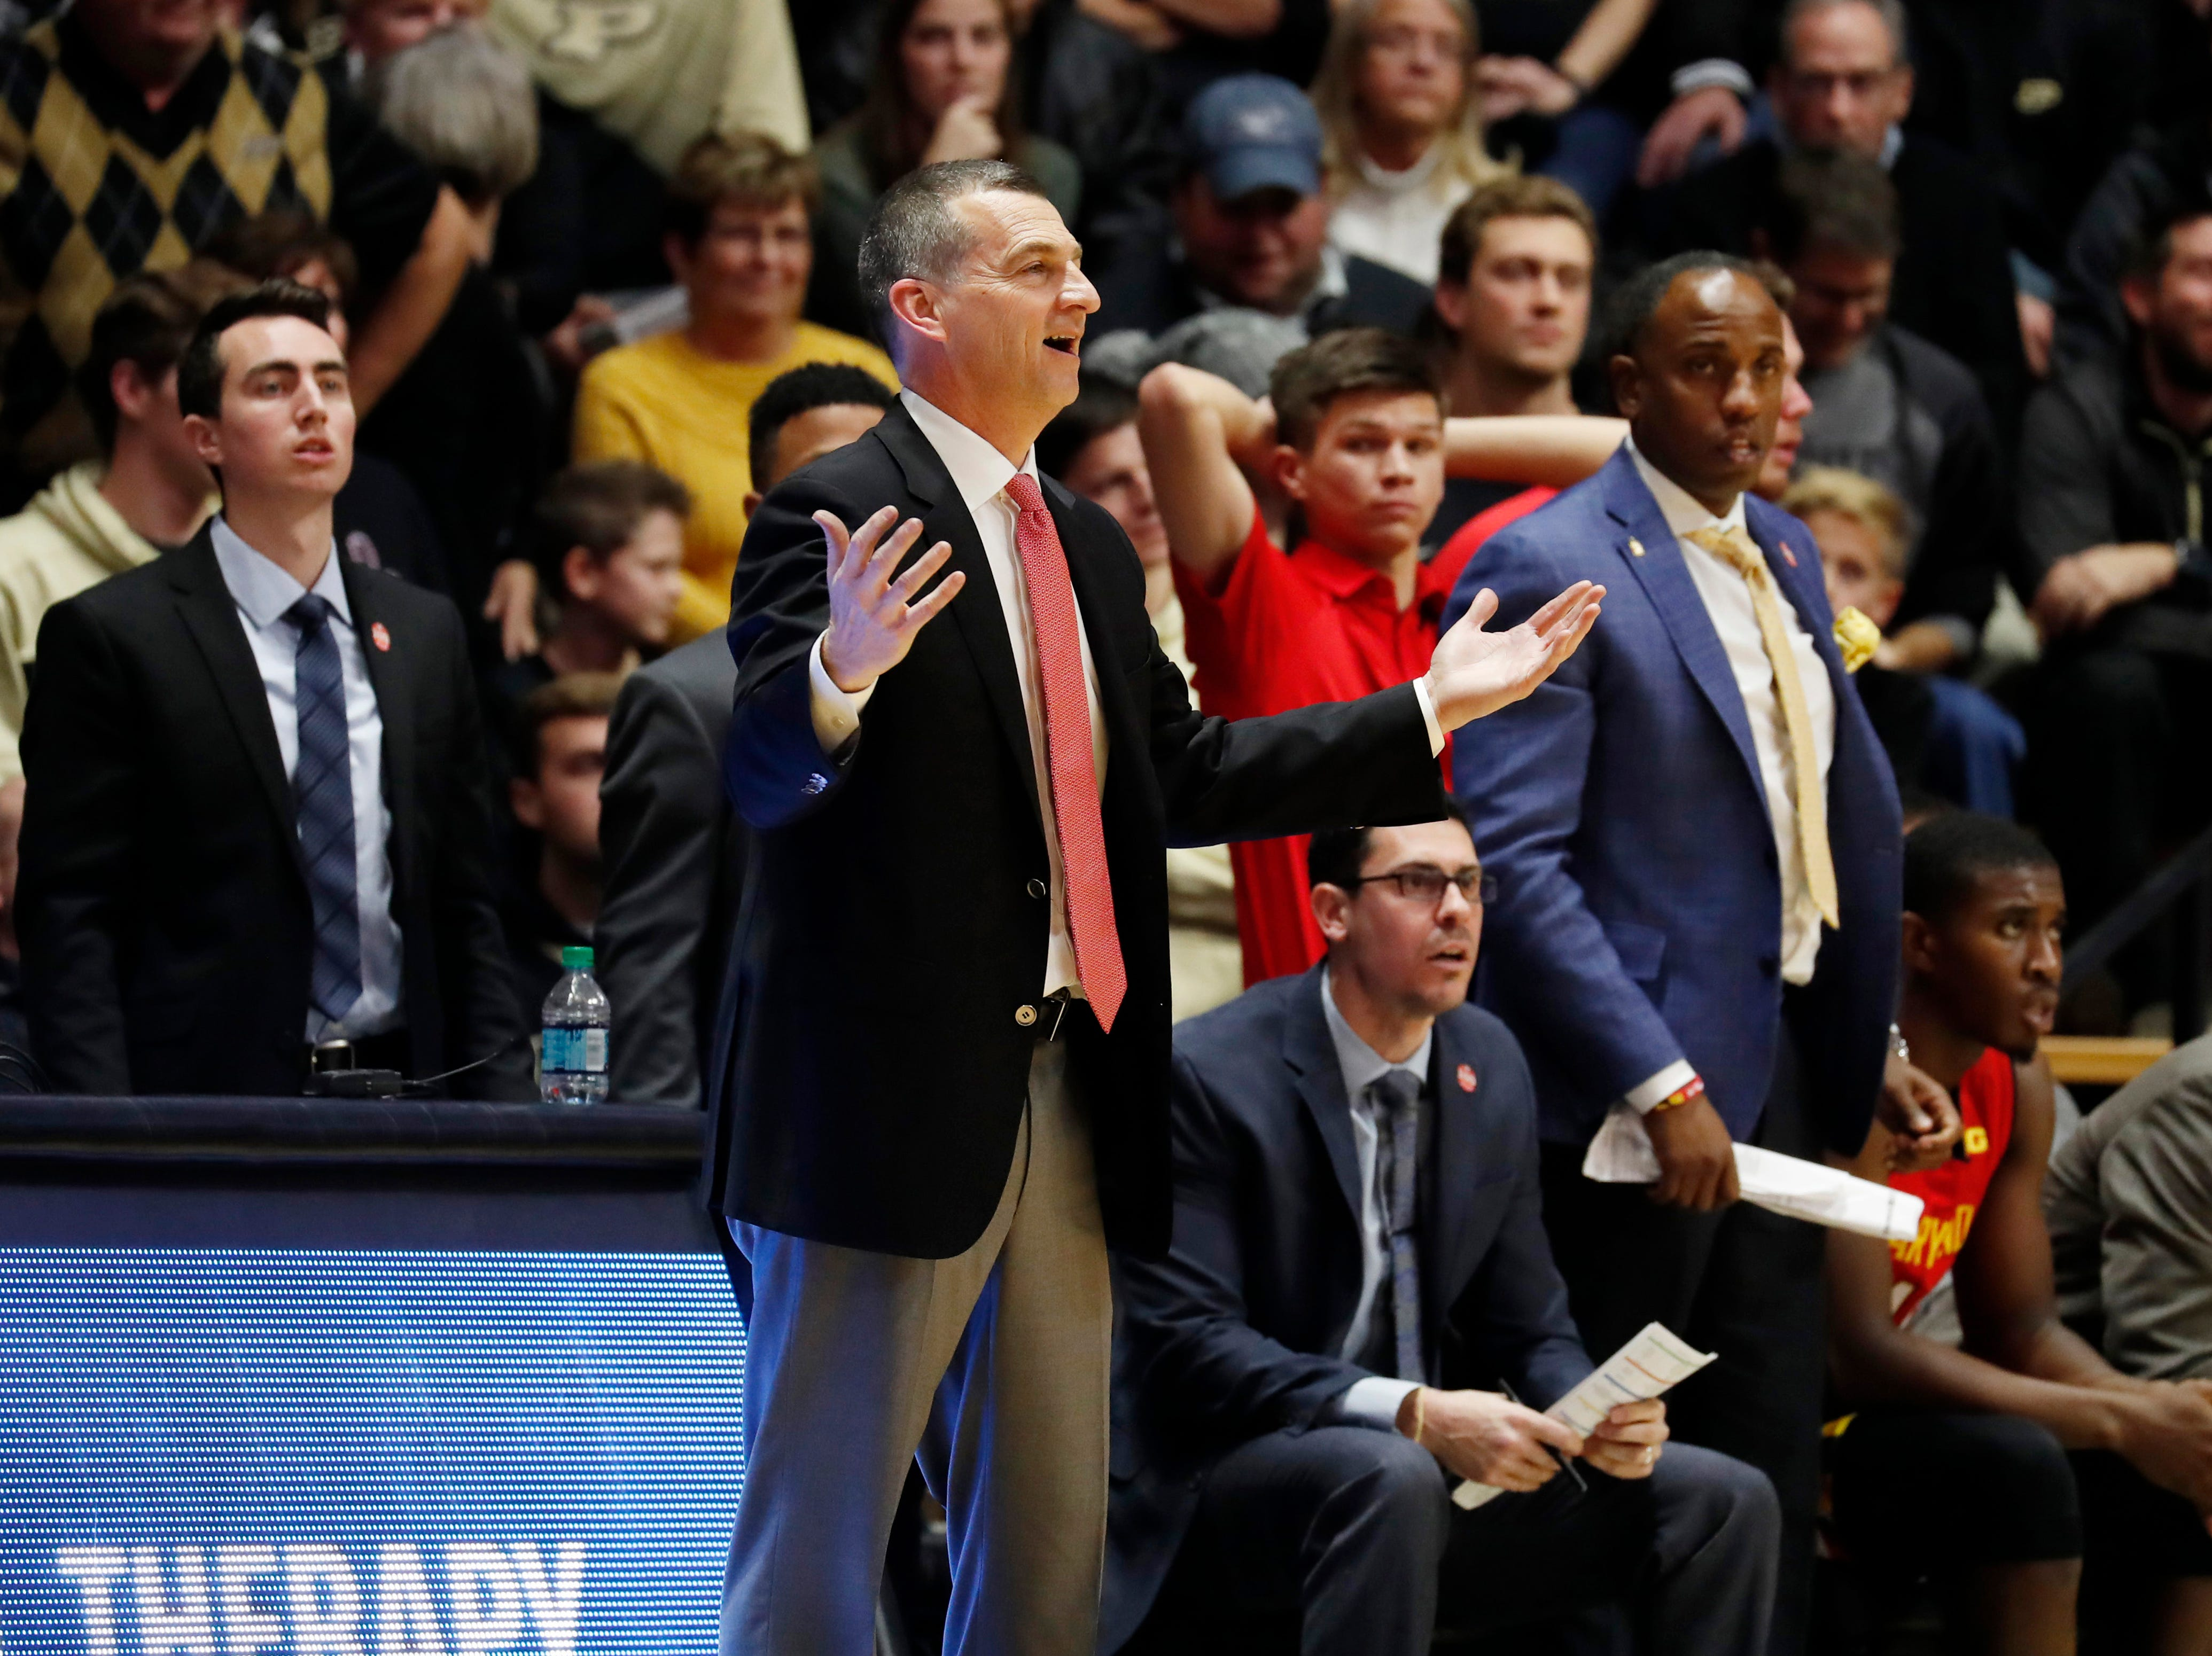 Dec 6, 2018; West Lafayette, IN, USA; Maryland Terrapins coach Mark Turgeon coaches on the sidelines in a game against the Purdue Boilermakers during the second half at Mackey Arena. Mandatory Credit: Brian Spurlock-USA TODAY Sports